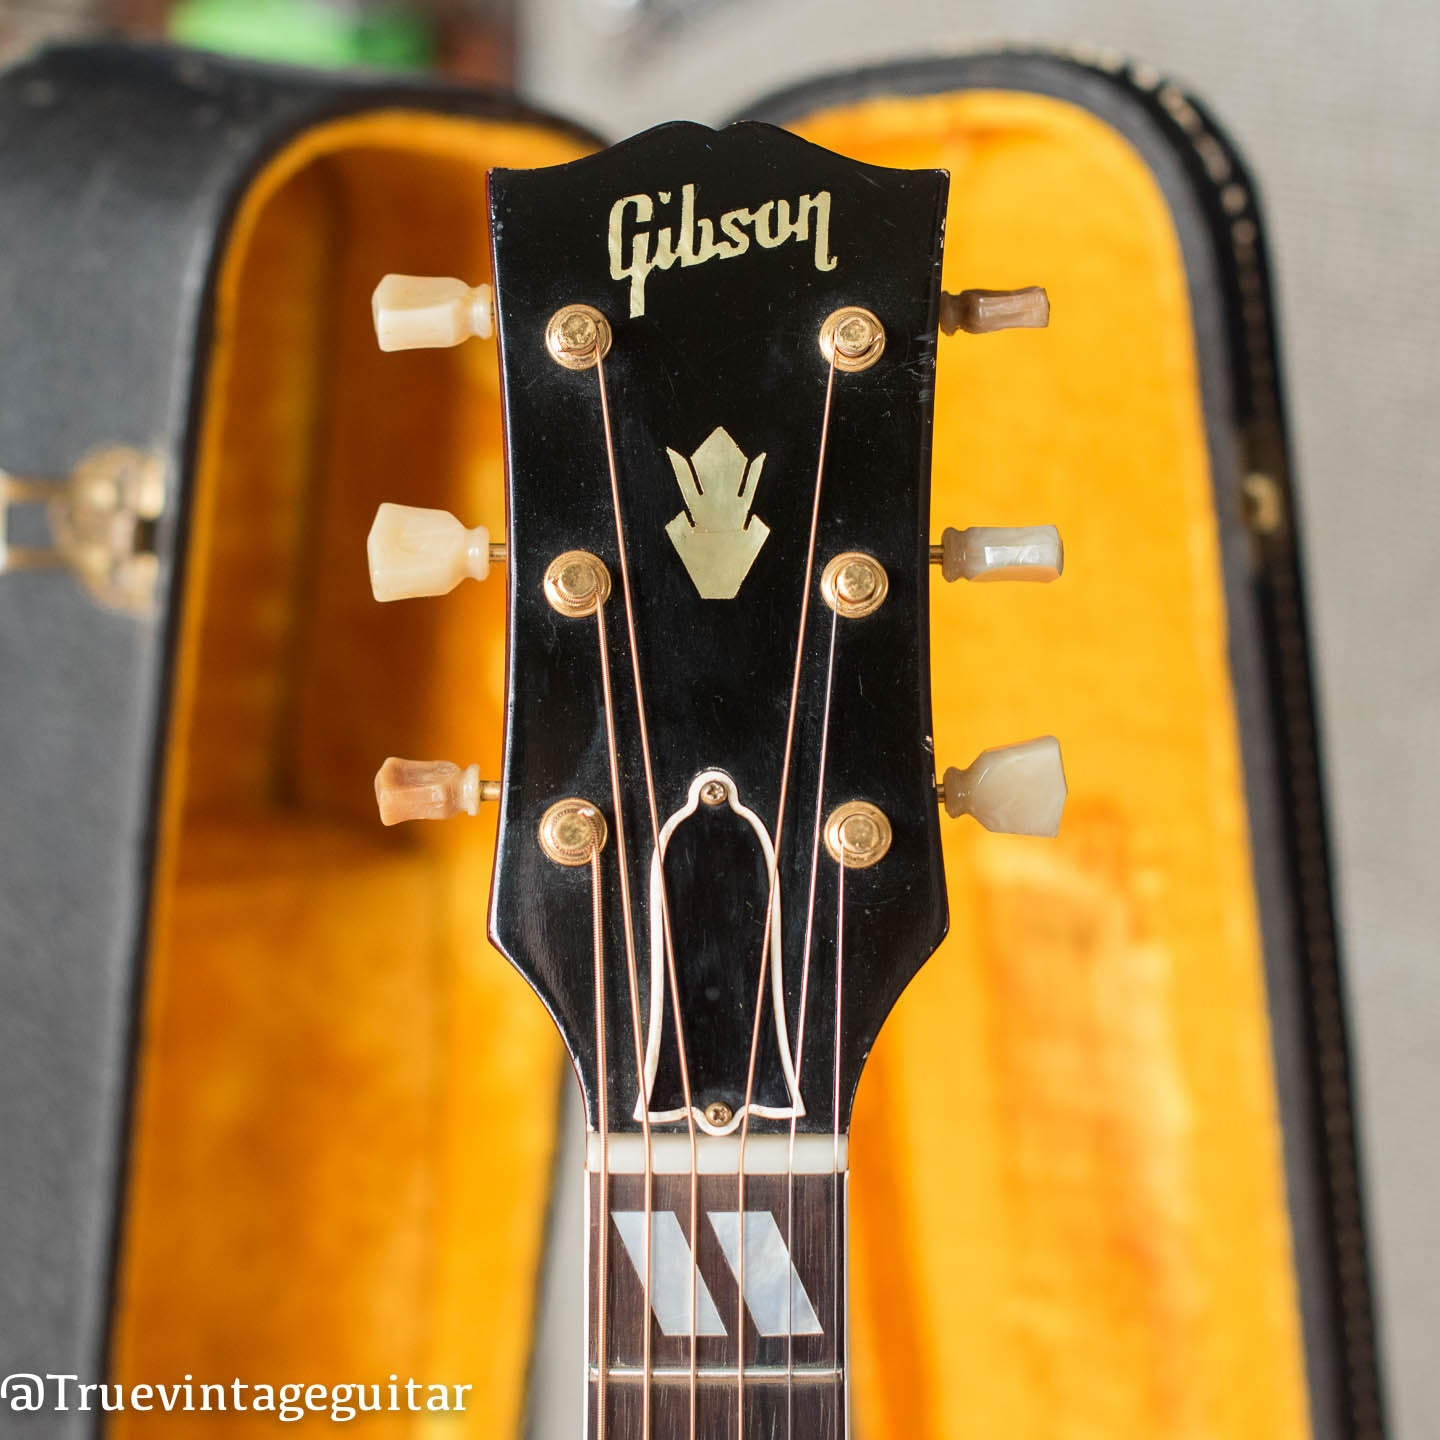 Headstock, pearl Gibson logo, Vintage 1963 Gibson Hummingbird acoustic guitar